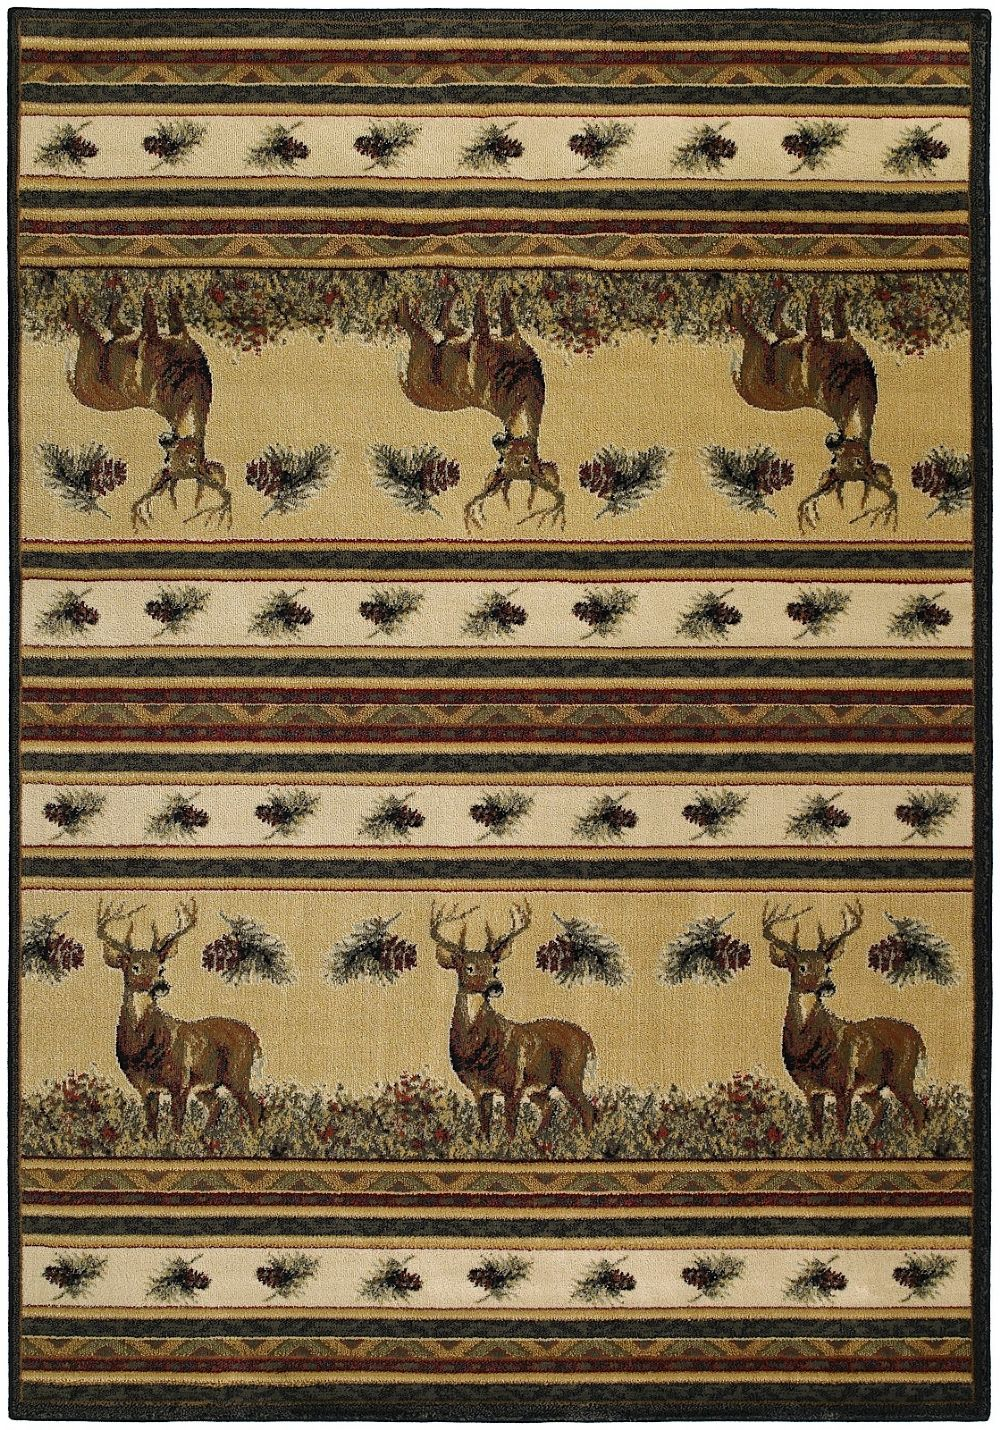 united weavers marshfield genesis master of the meadow southwestern/lodge area rug collection